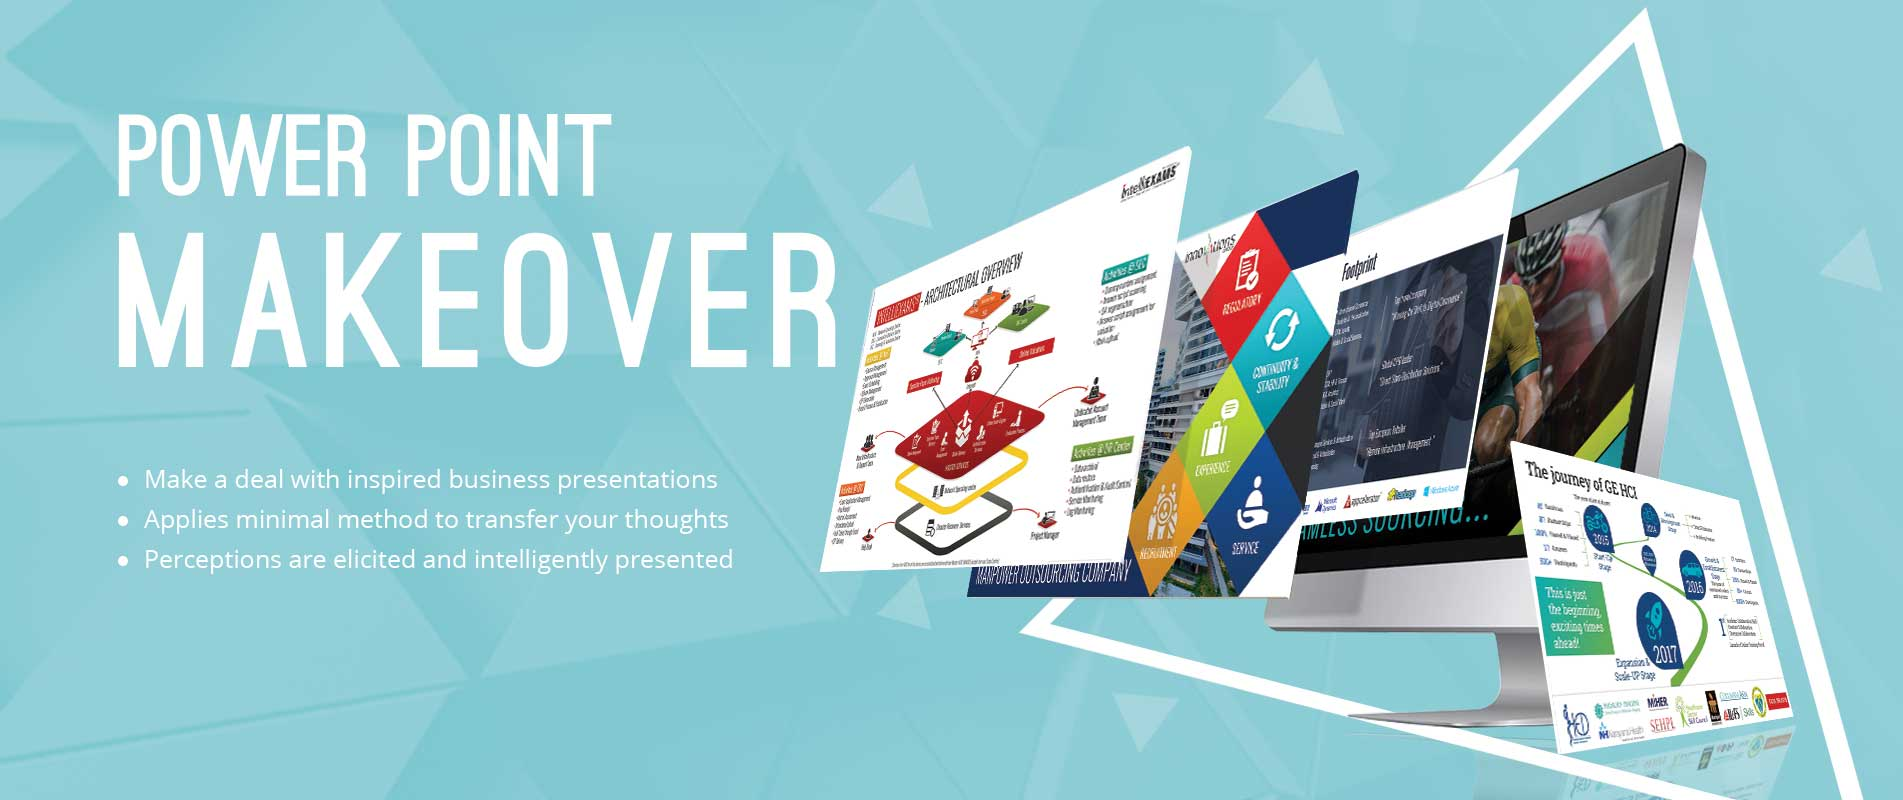 Powerpoint Presentation Services Bangalore